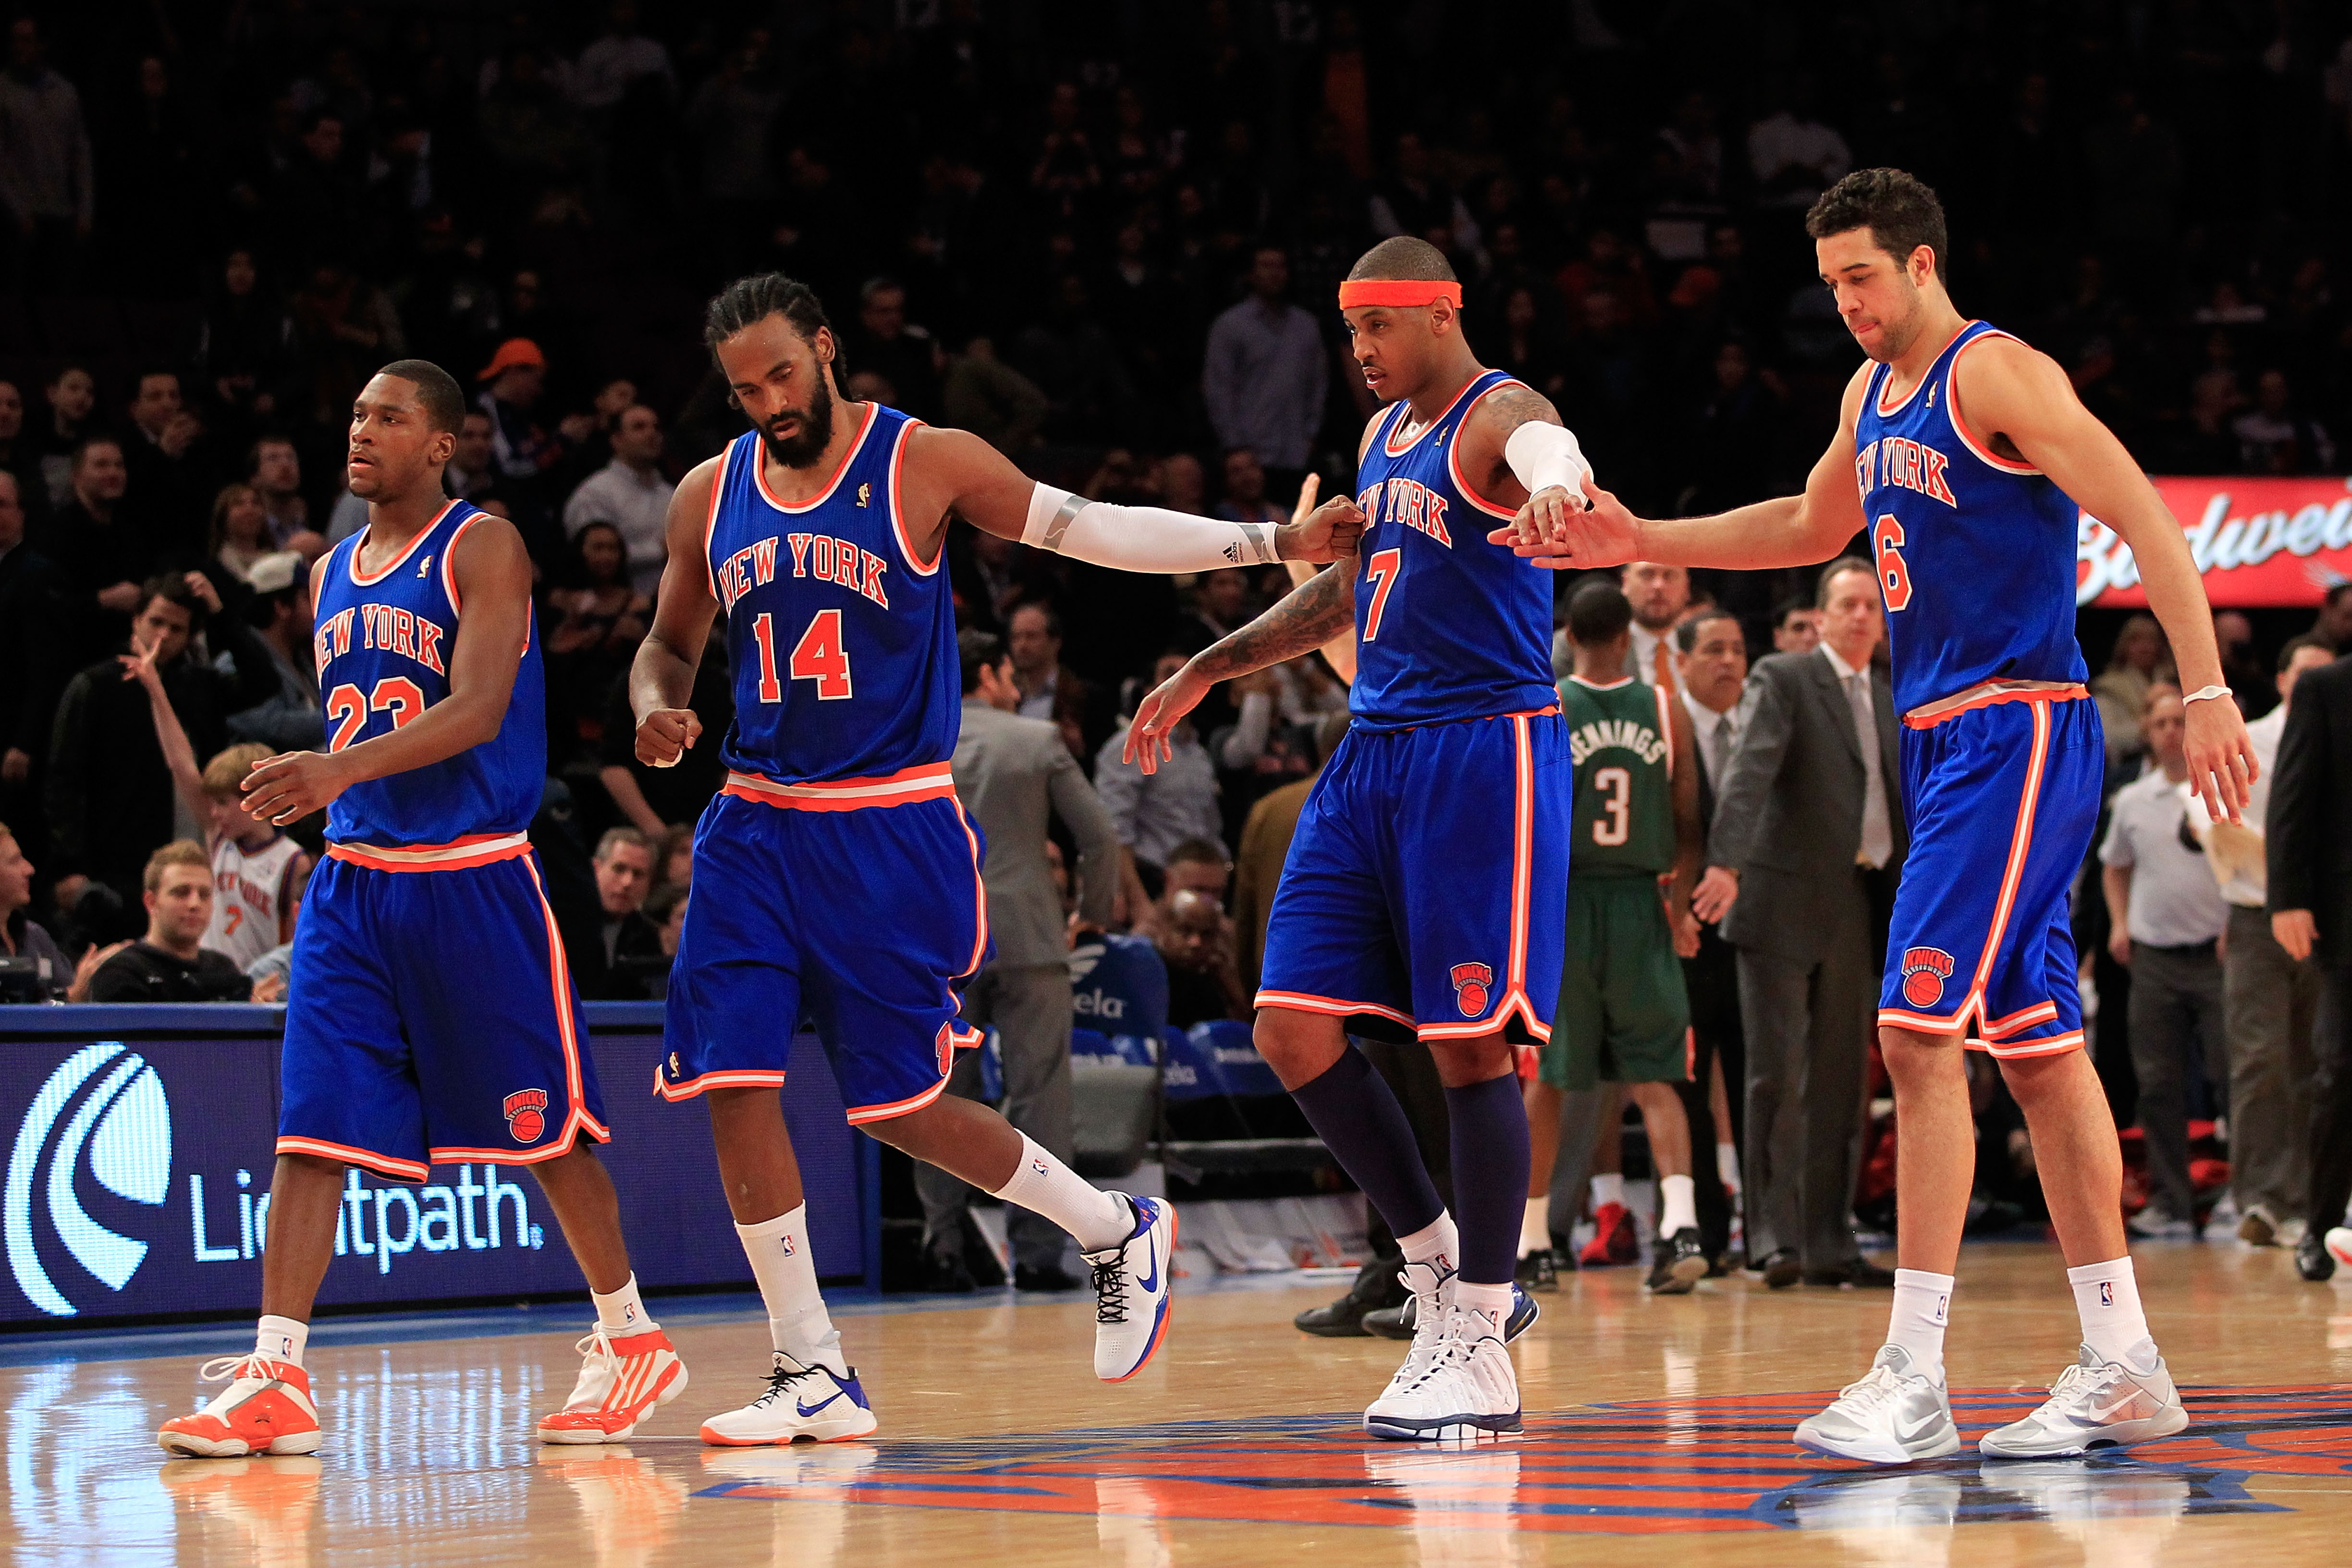 Melo to the Knicks is one trade being discussed in this article.